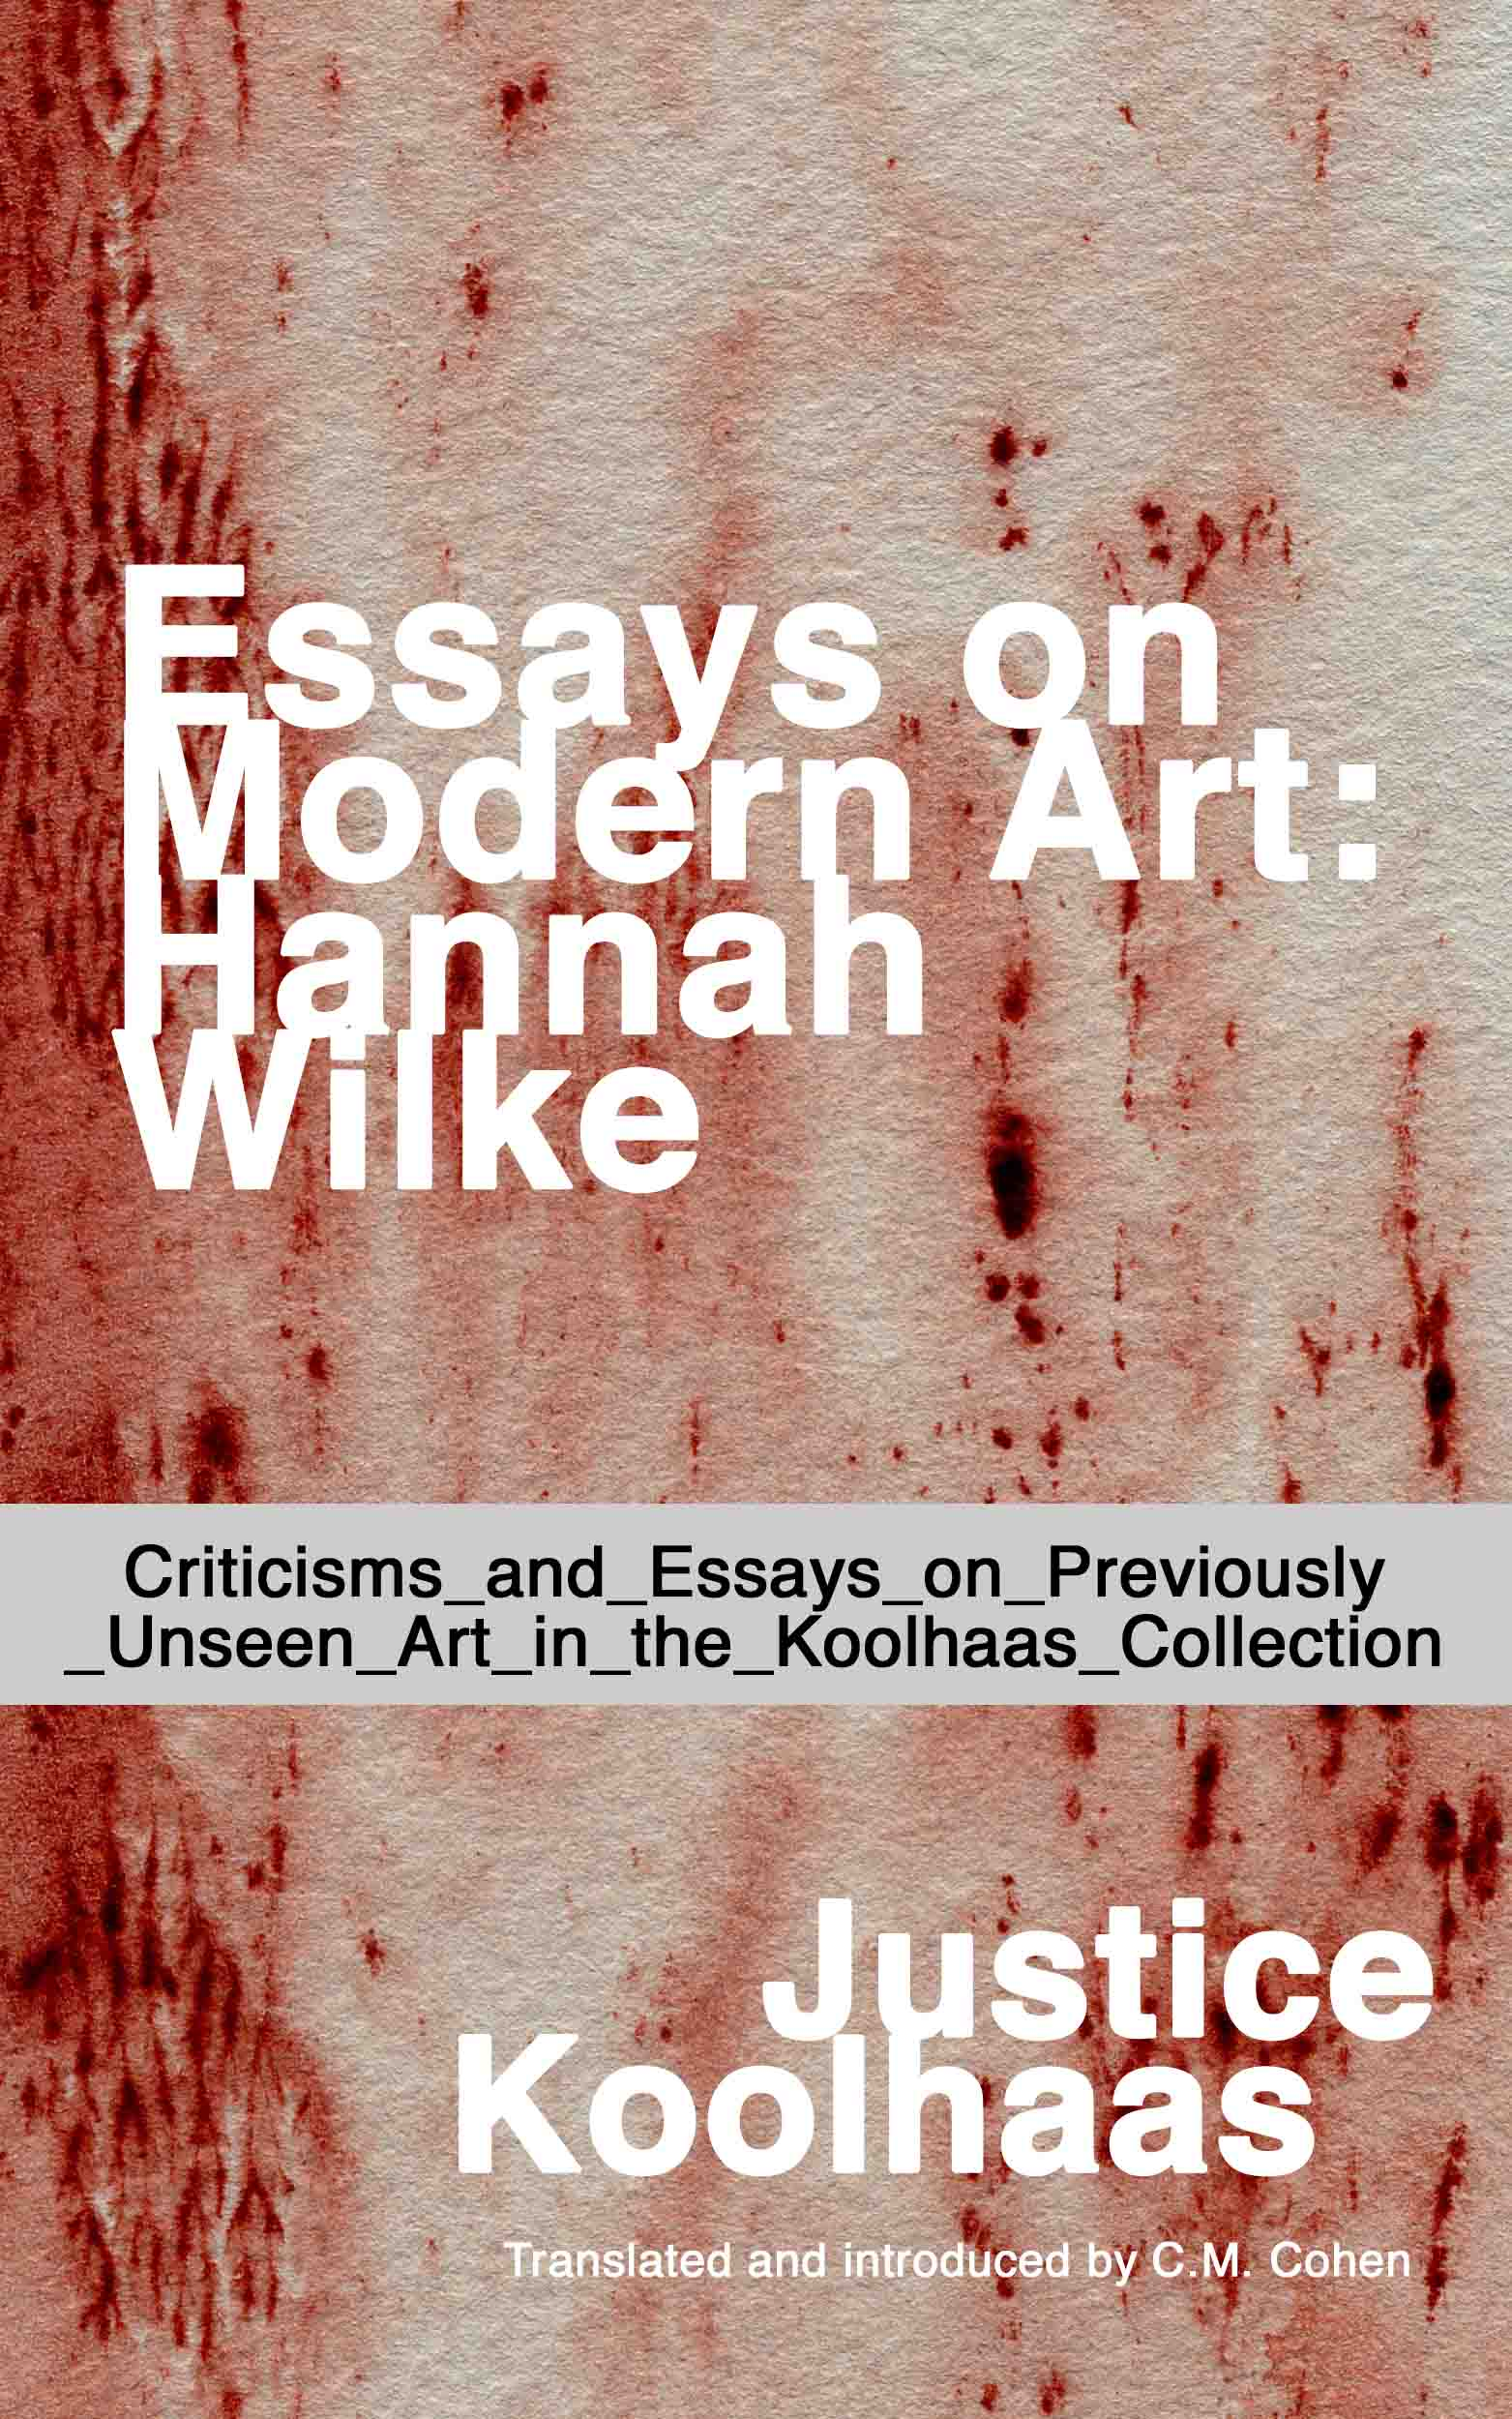 essays on modern art Free modern art papers, essays, and research papers.